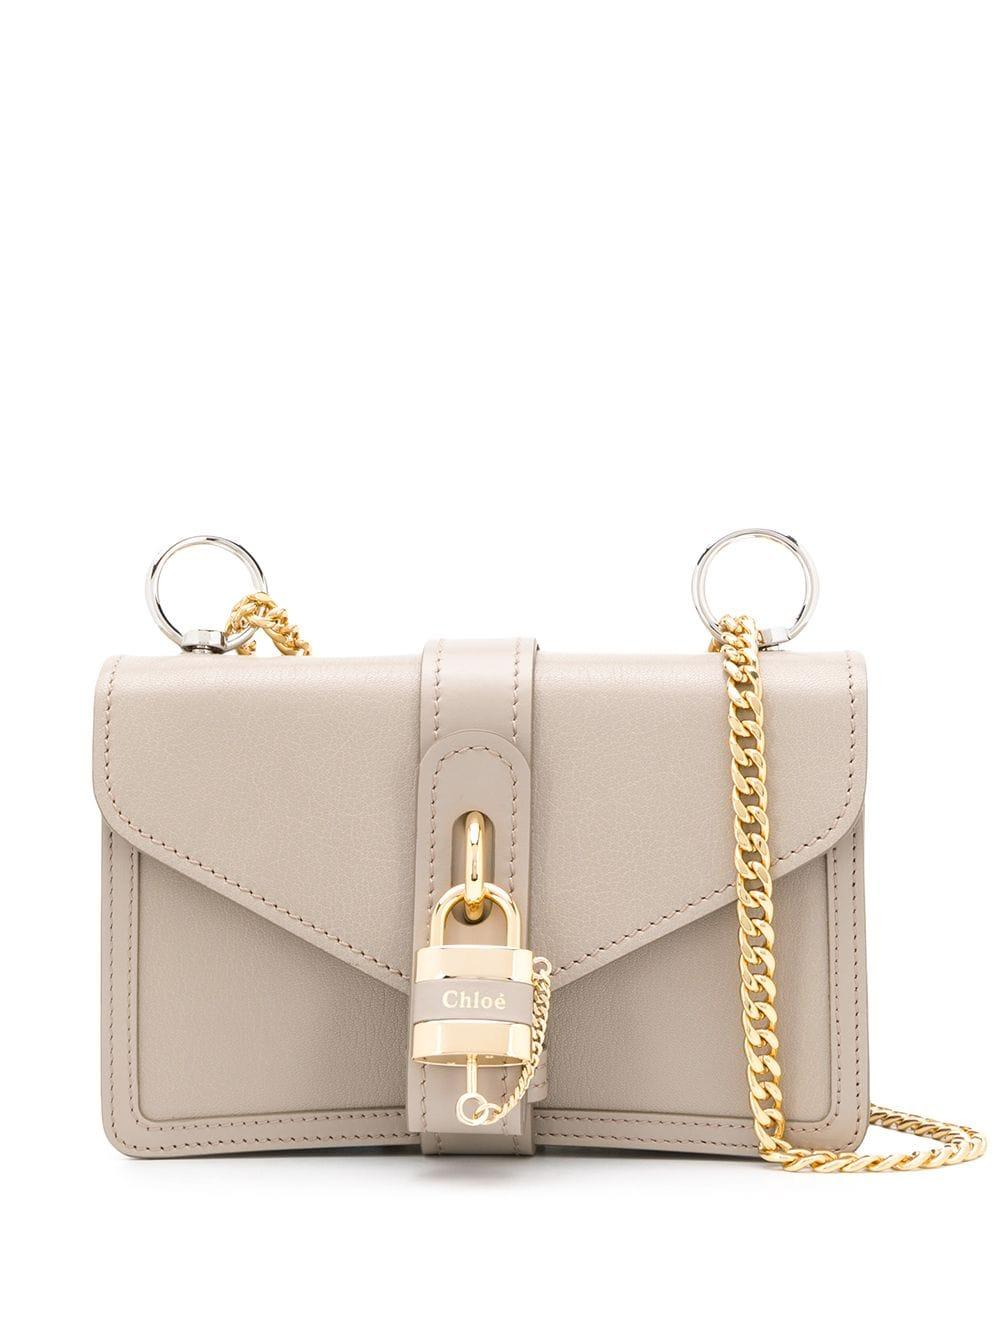 Aby Shiny Bag With Lock Chain Strap